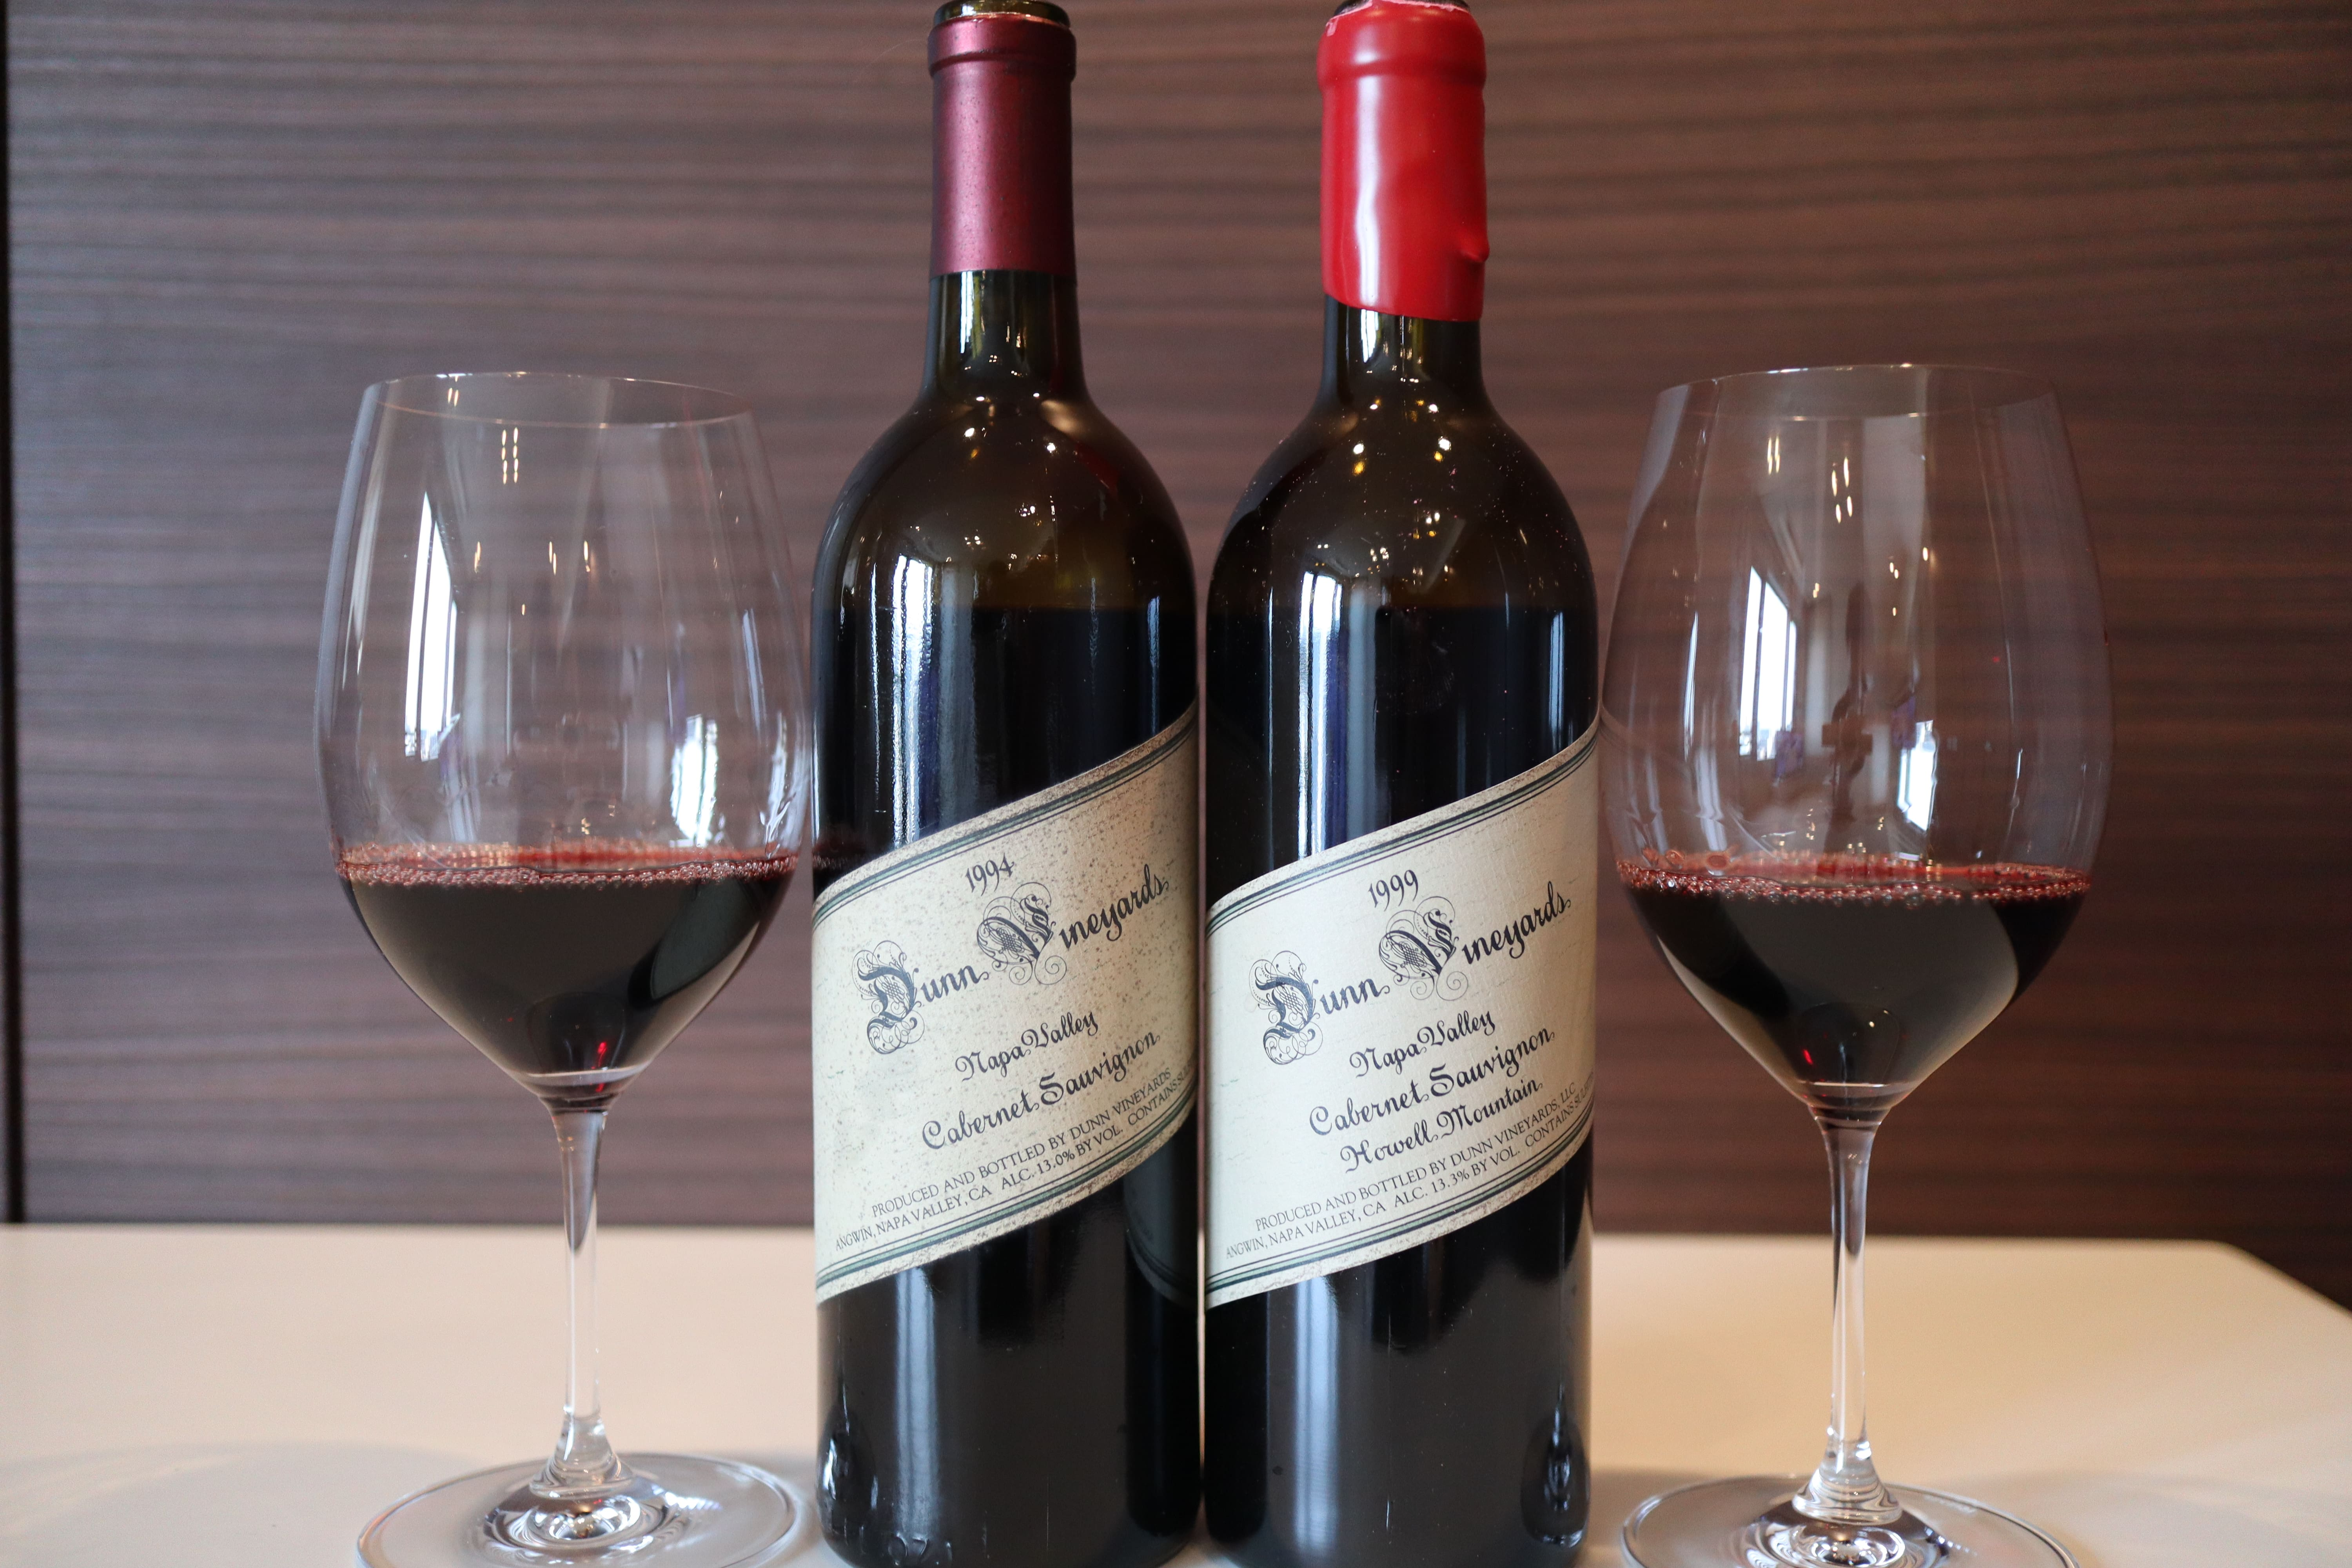 Dunn Cabernet Sauvignon Howell Mountain 1999 vs Napa Valley 1994